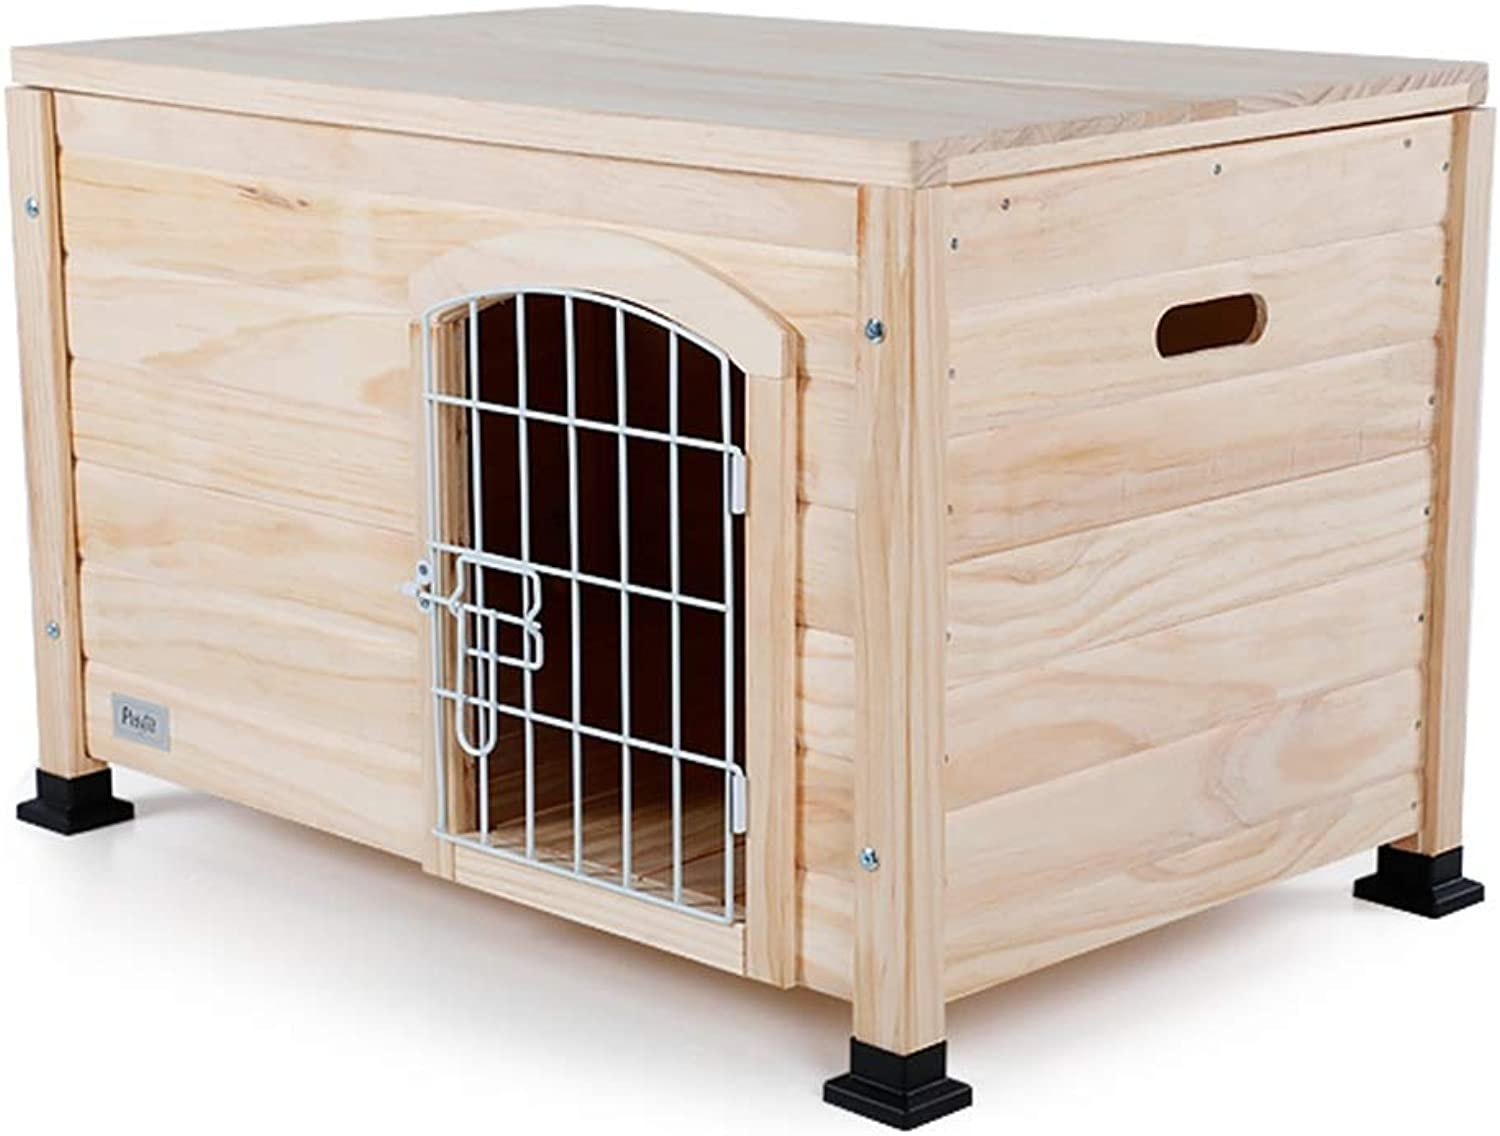 Kennel Dog Houses Pine Closed Pet Nest Outdoor Square Waterproof Four Seasons Suitable For 16 Kg Pets Houses, Crates & Accessories (color   Wood color, Size   78  51.5  51.5cm)